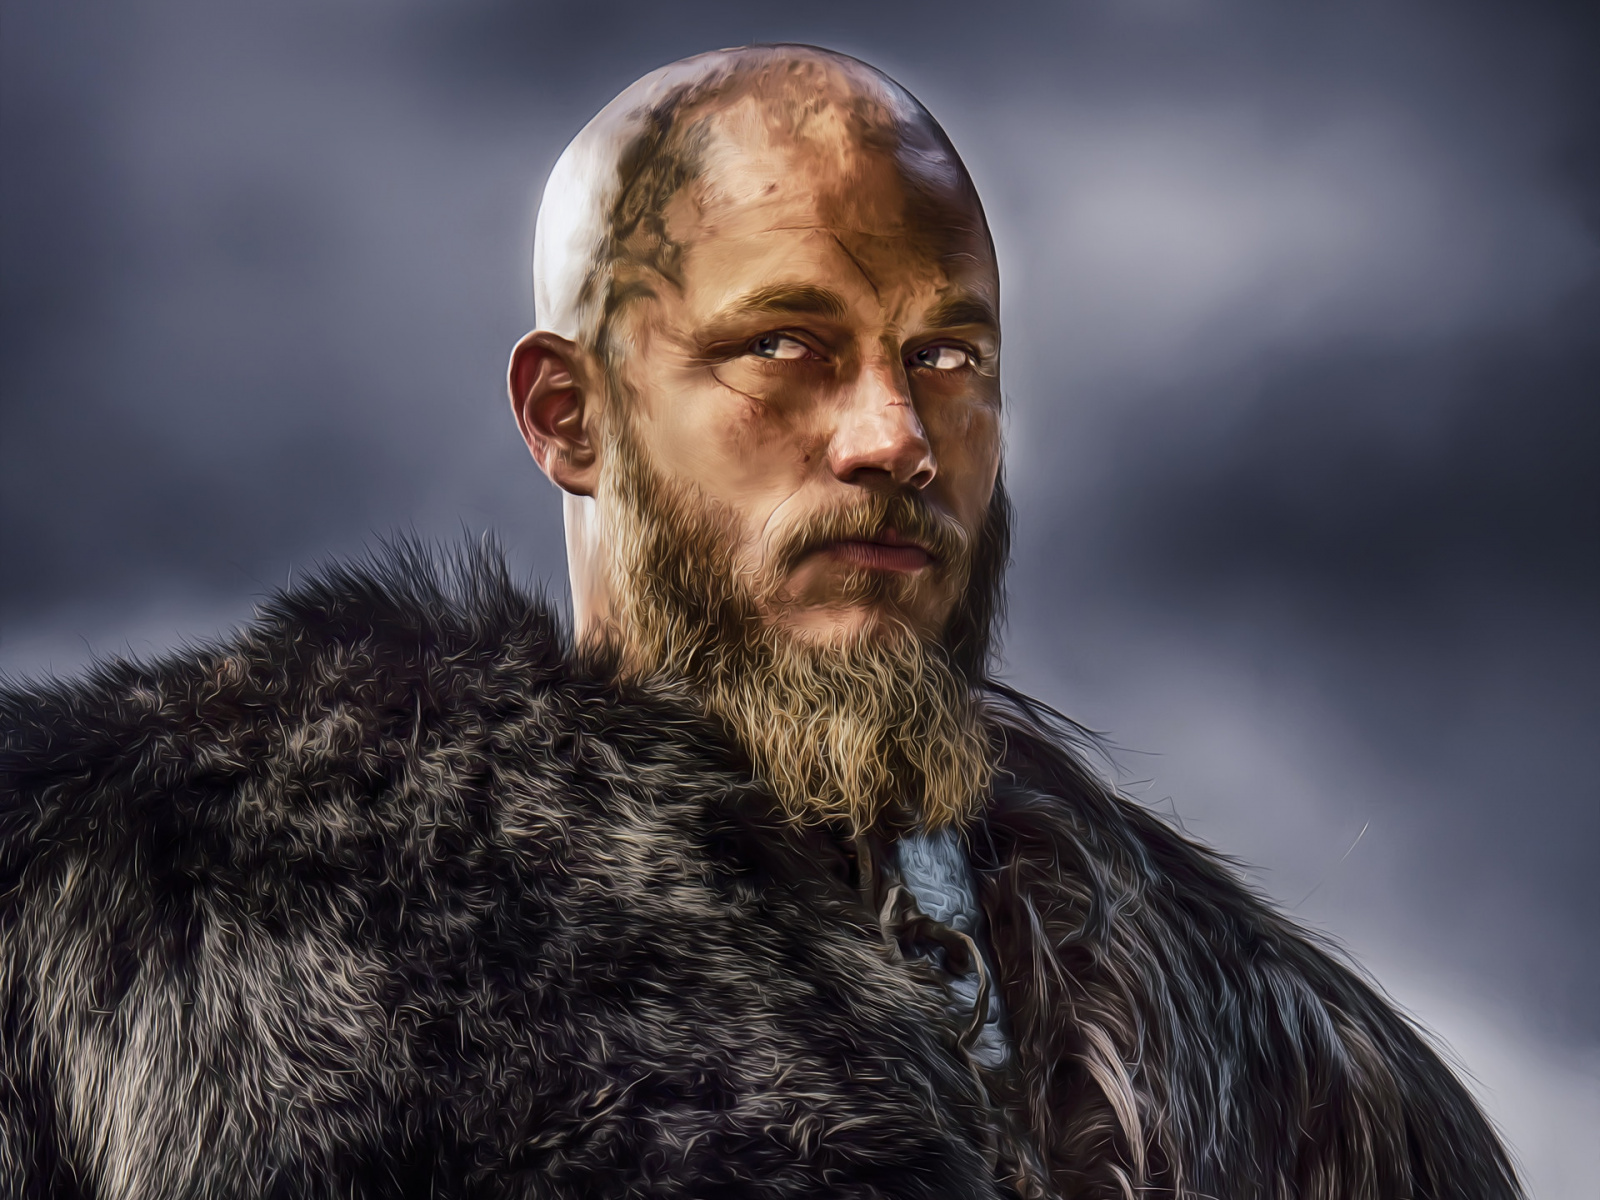 Vikings TV Show Wallpapers